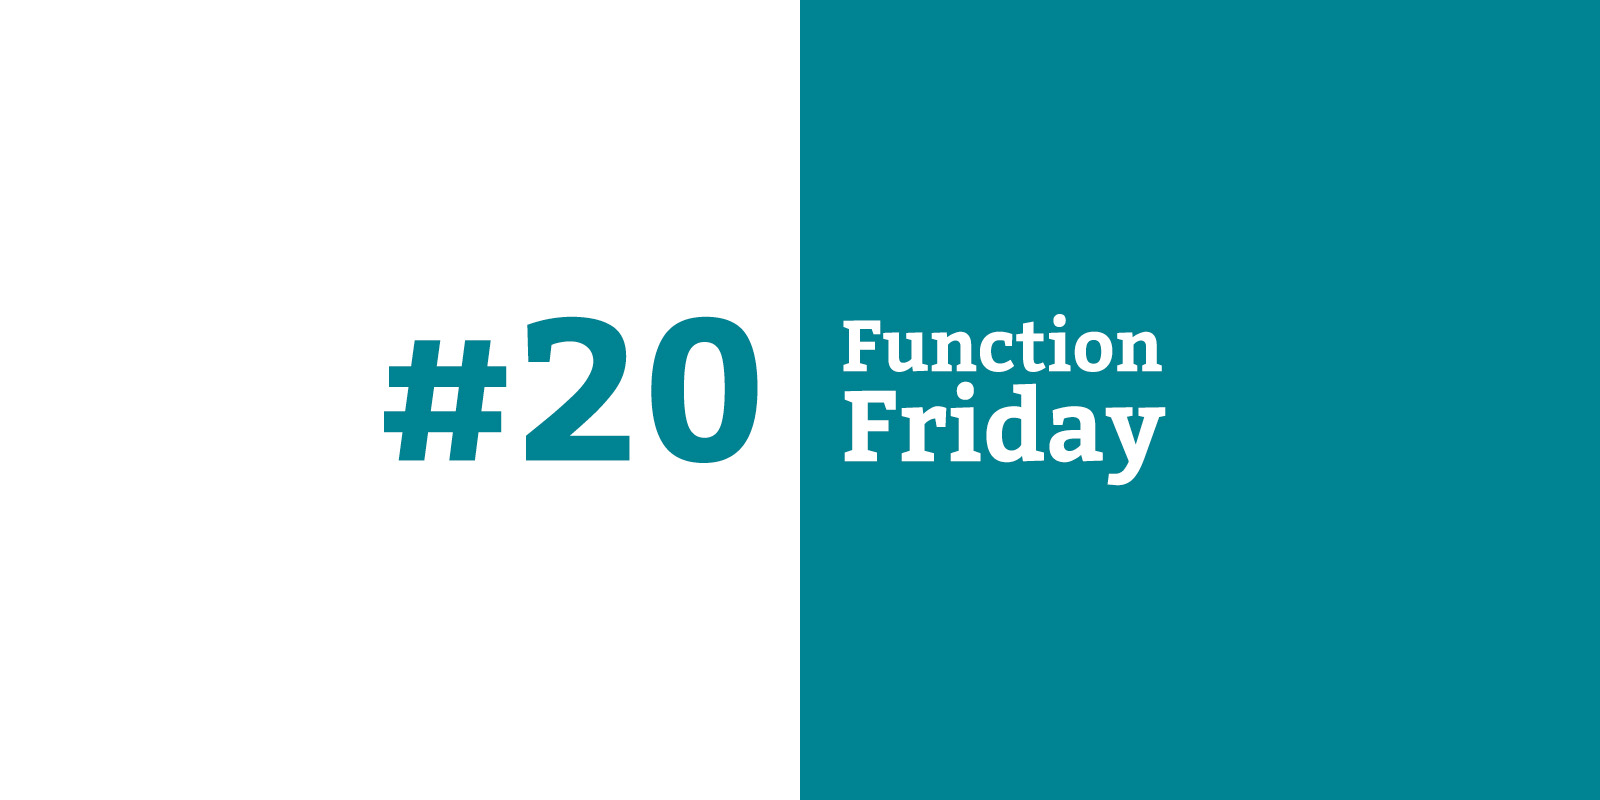 Function Friday #20